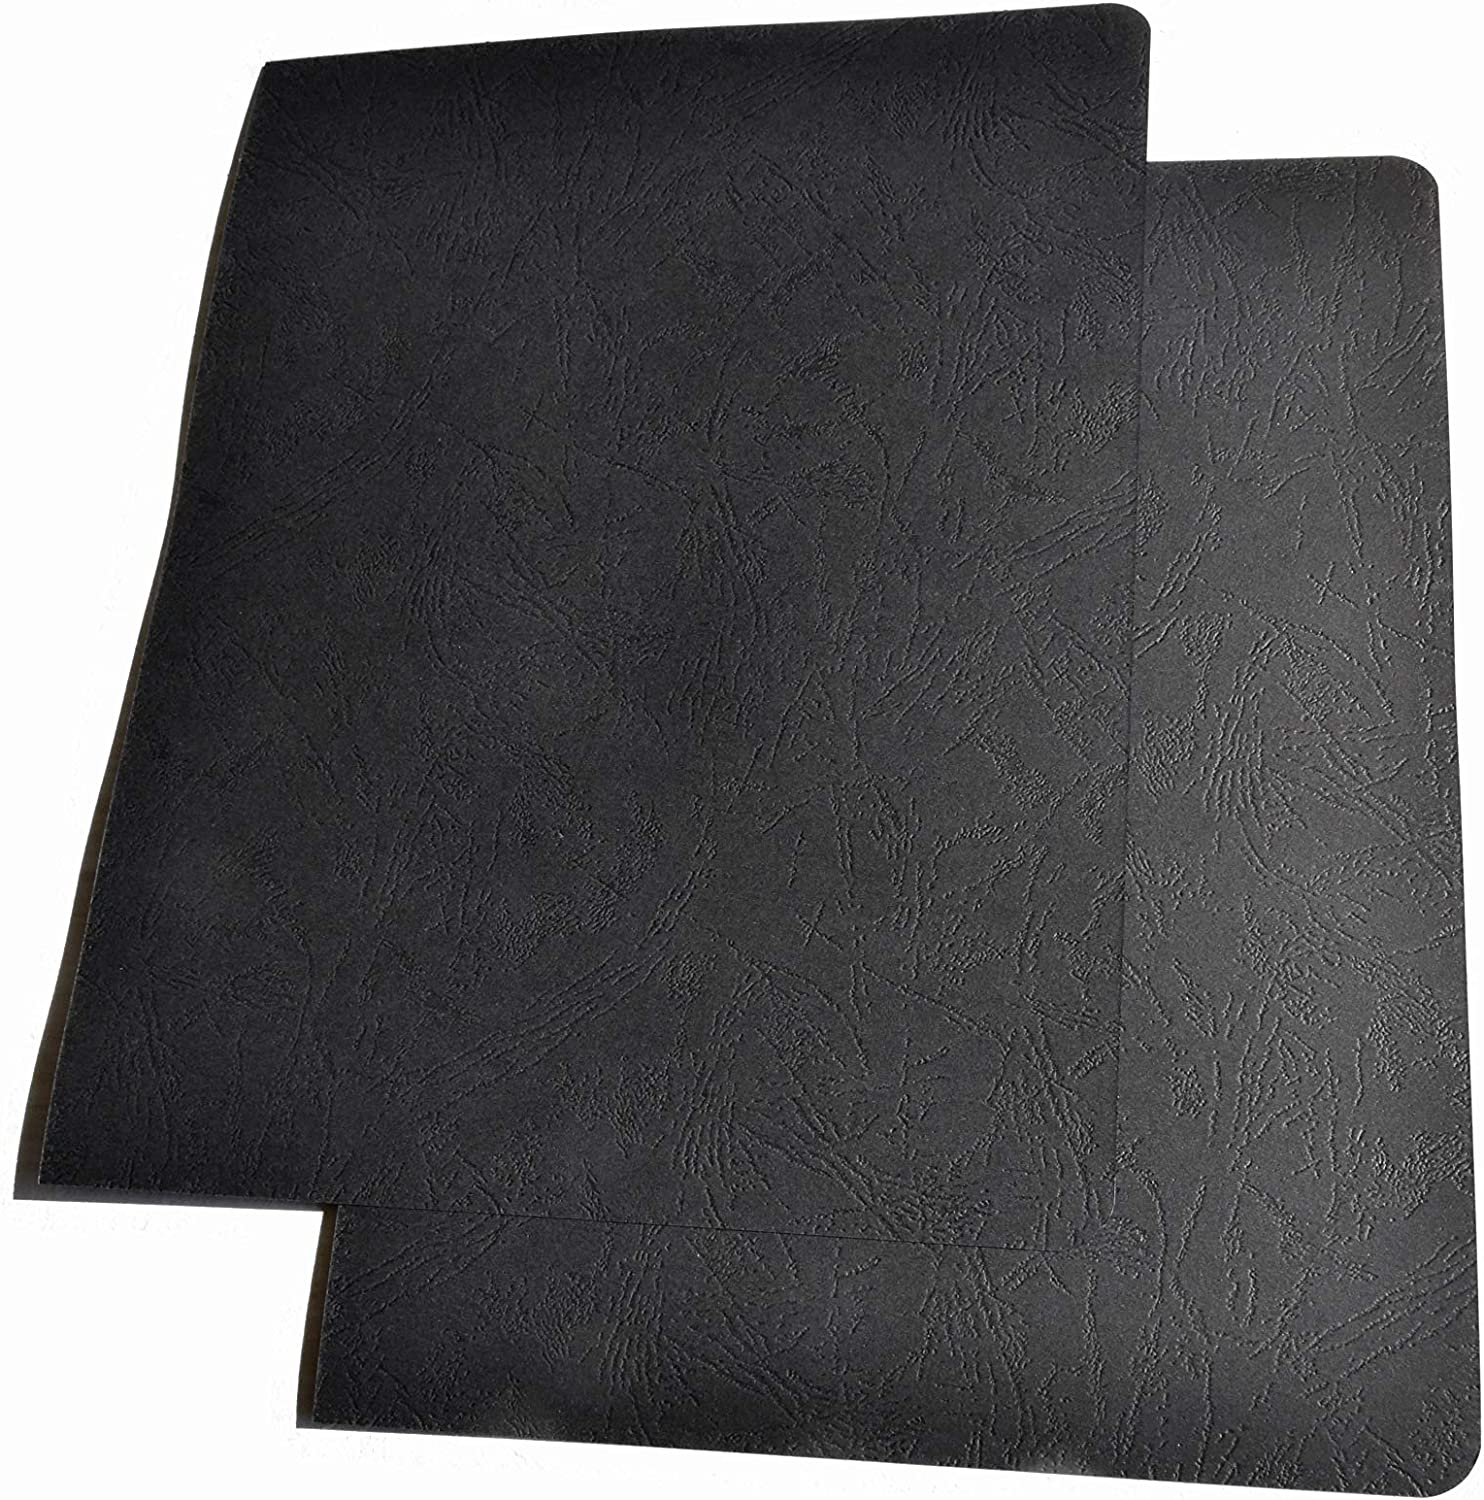 BNC Leather Texture Binding Presentation Paper Covers Pack of 100 Black Color Letter Size with Round Corner